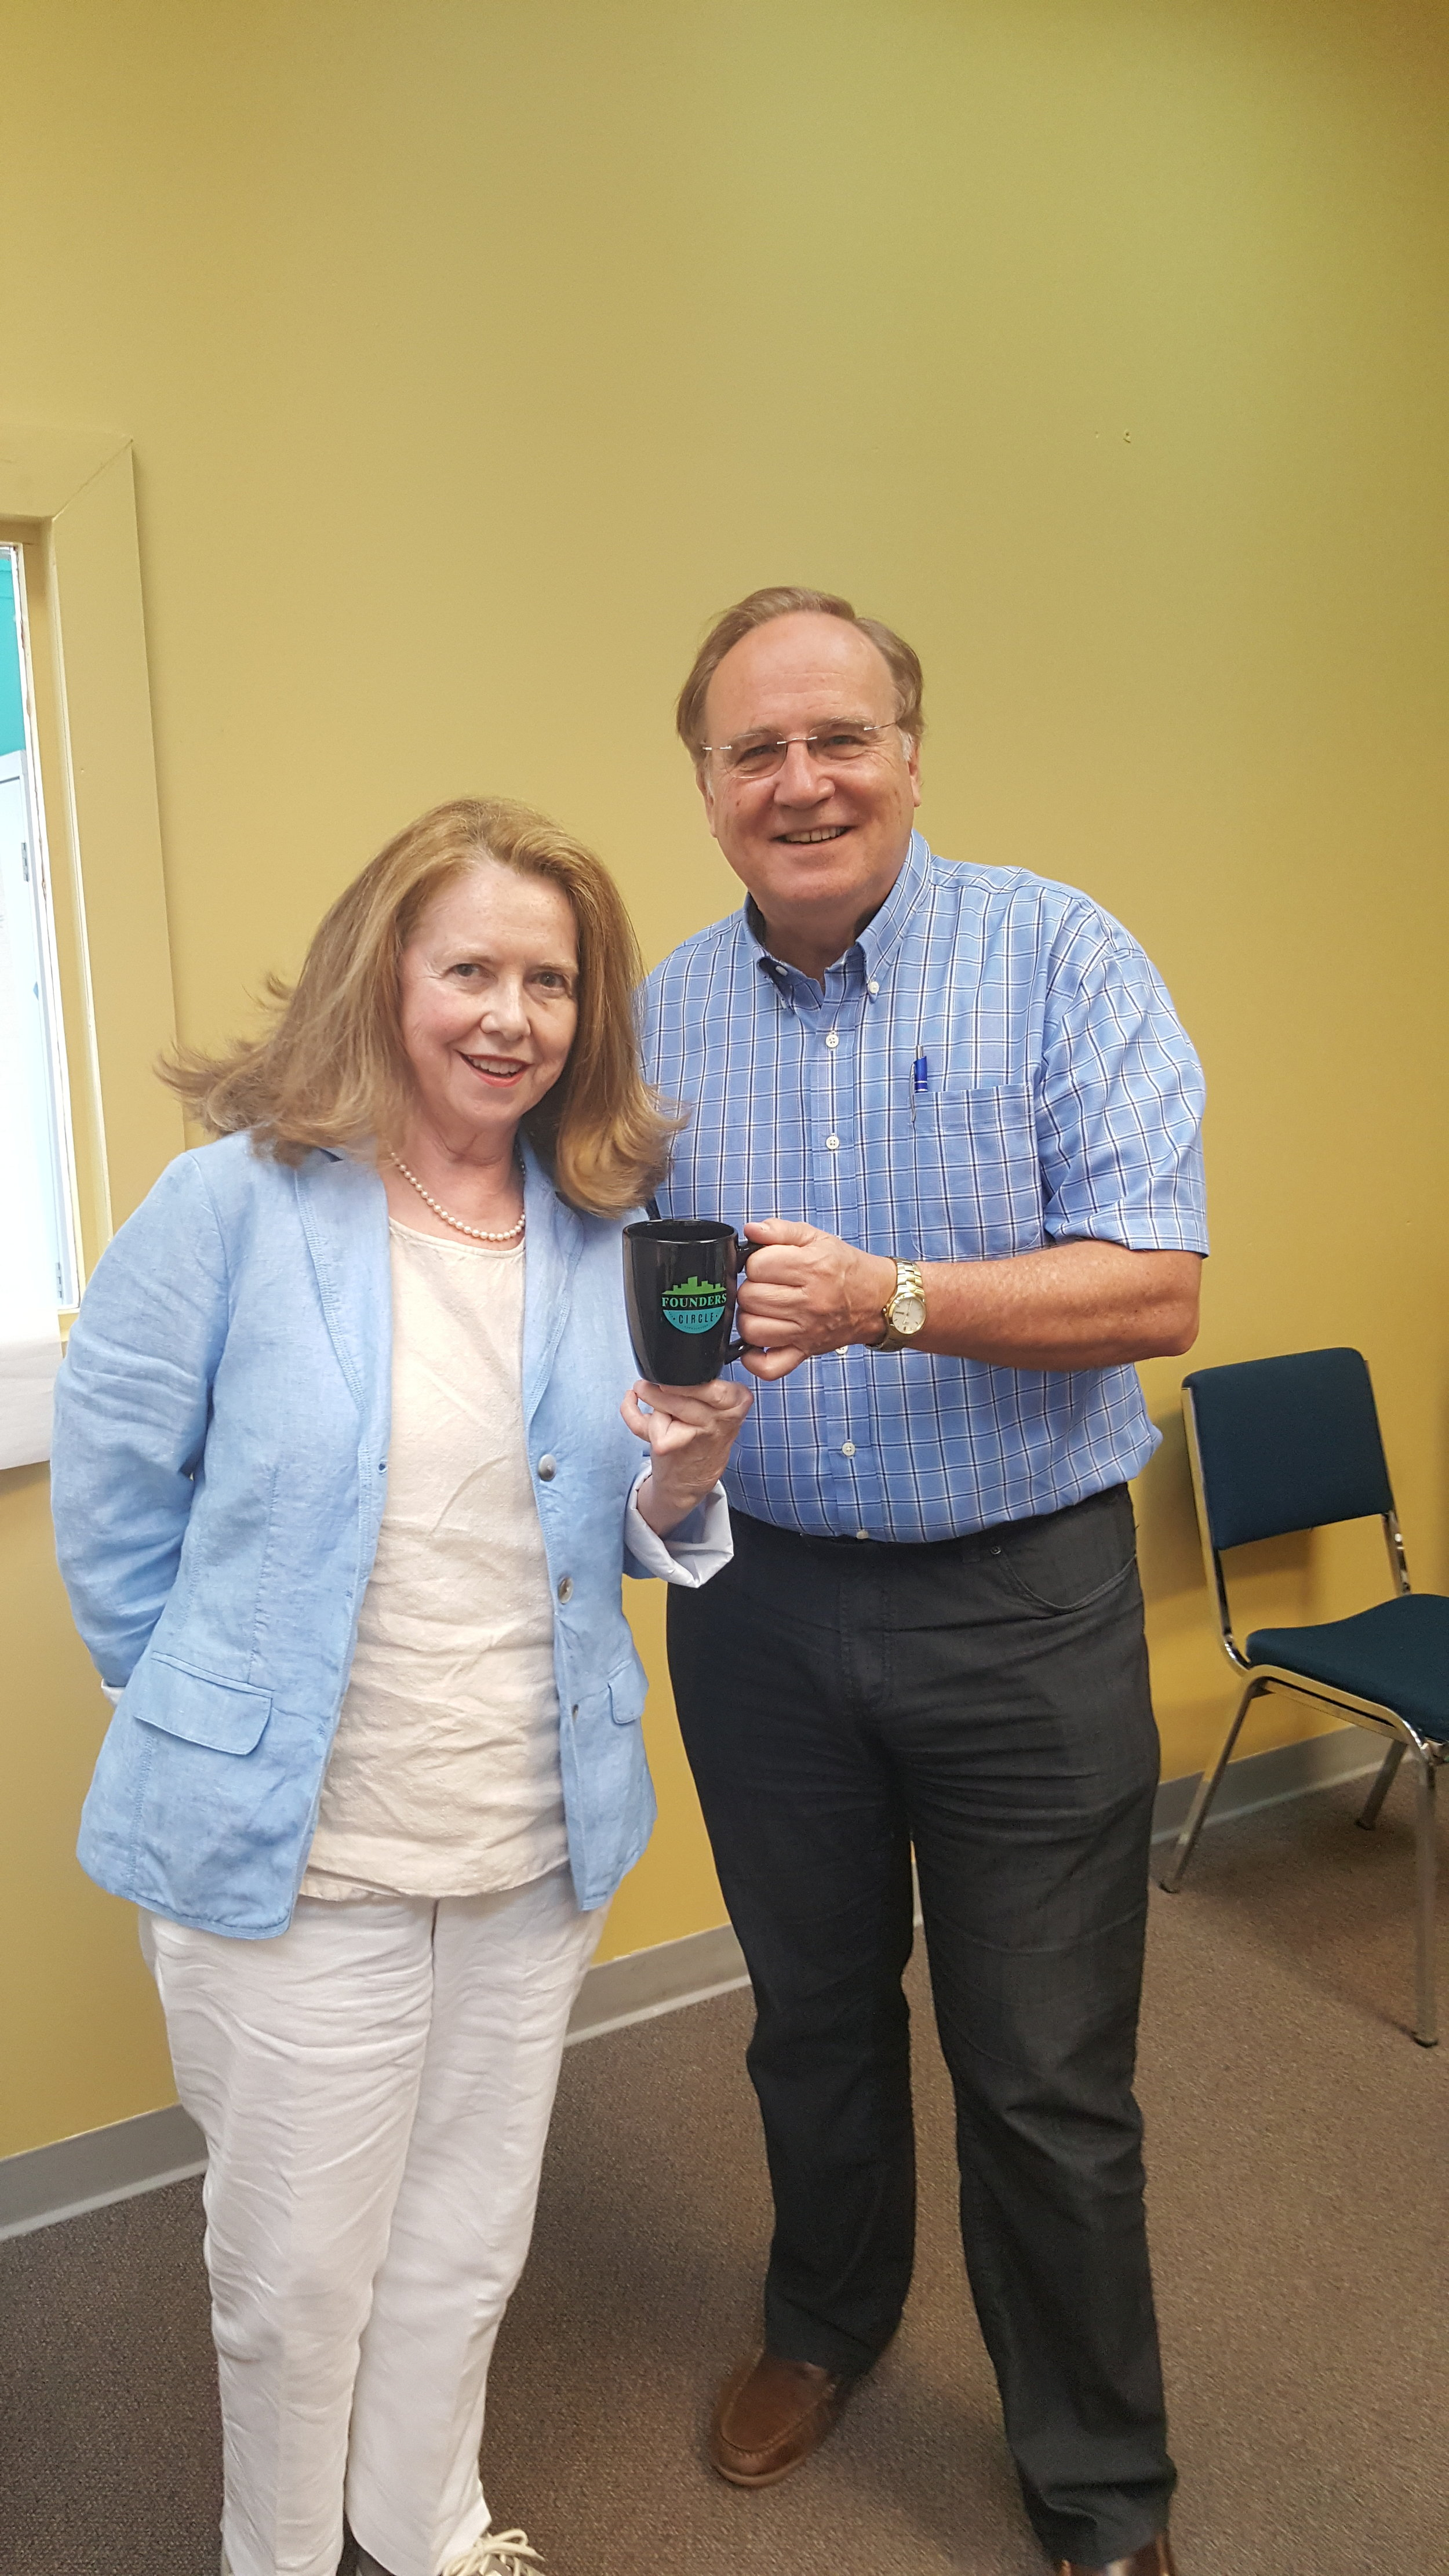 Stuart Morley presenting the mug to Maureen Cibberley who is the PMCN rep on Founders Circle